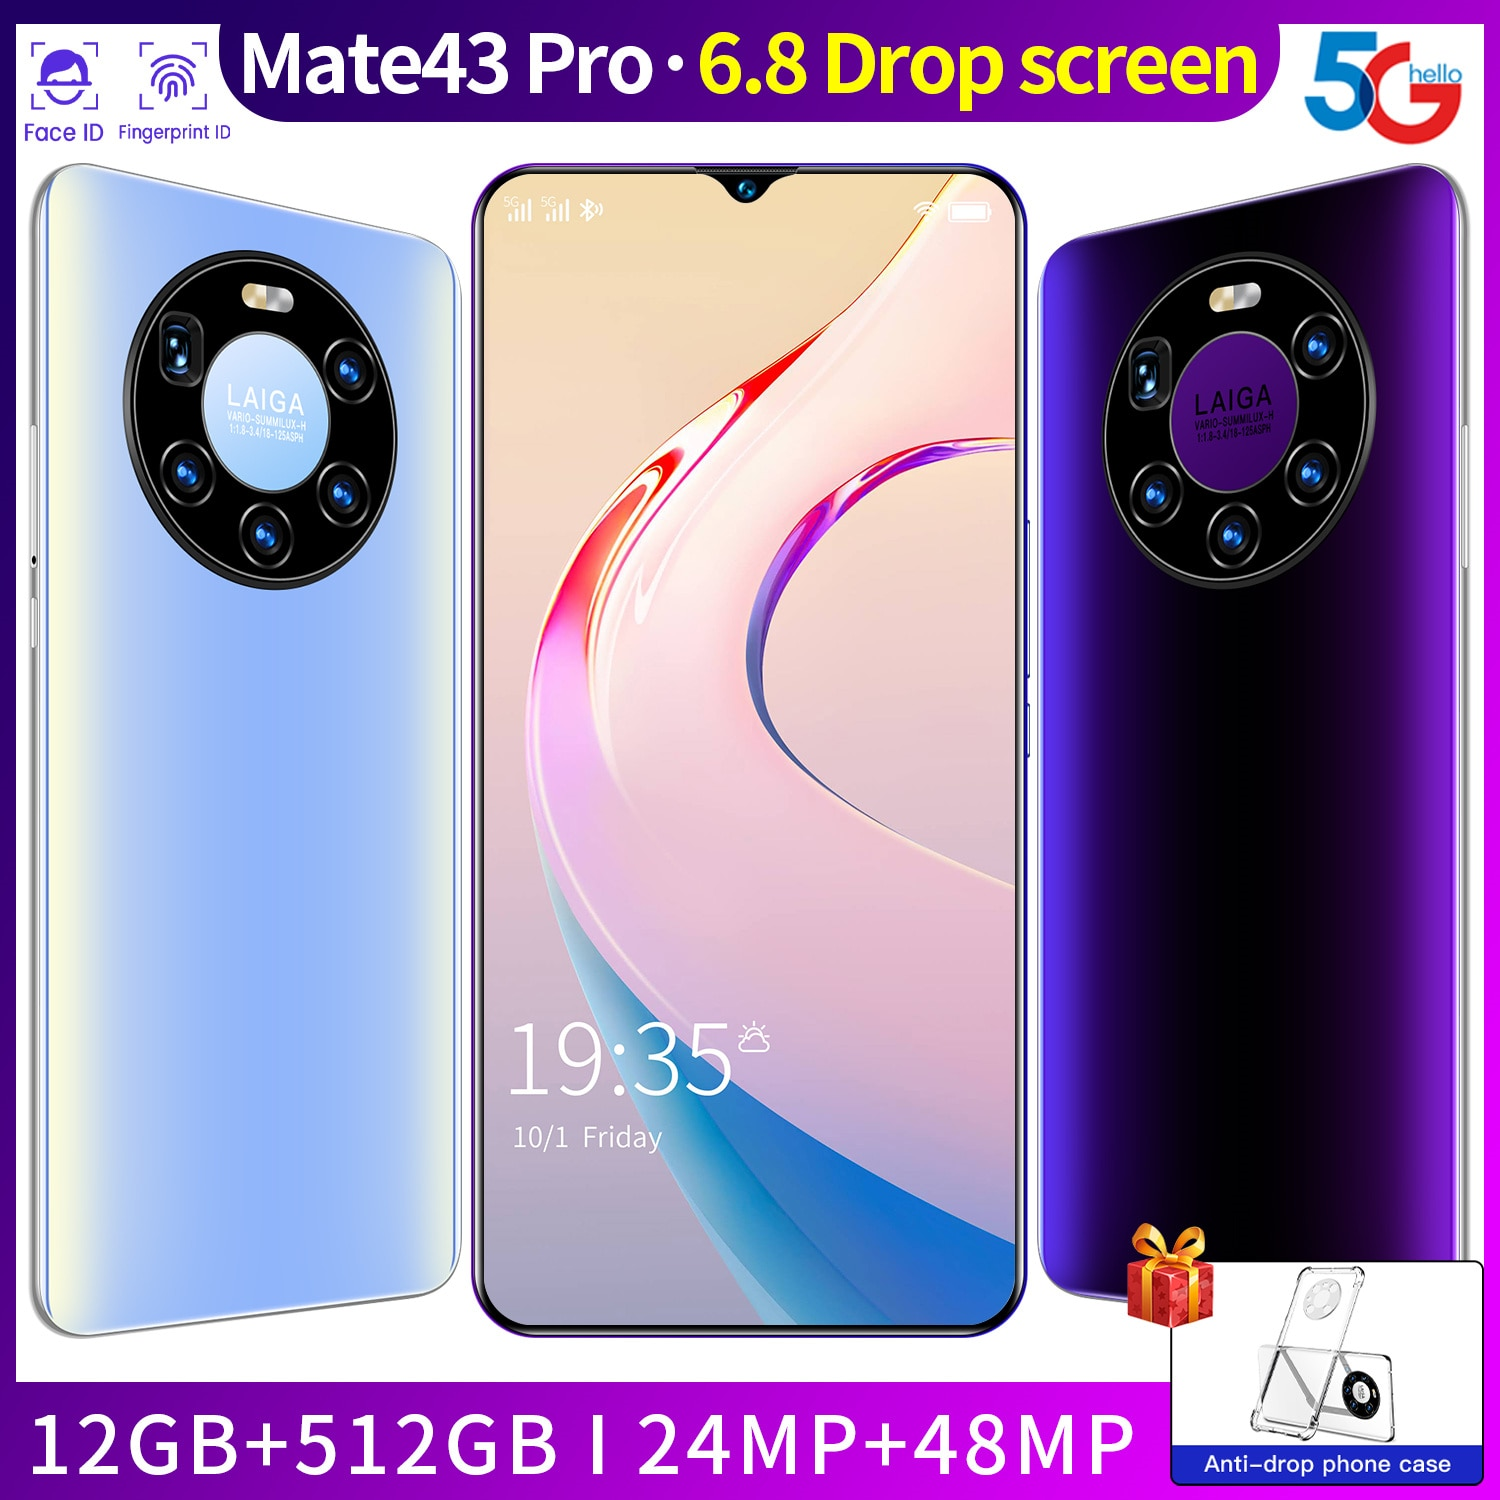 SAILF Maet43 Pro Android 10.0 Mobile Phone 6.8' FHD+ 24MP Triple Camera 12G RAM 512GB ROM Smartphone 4G gsm Global